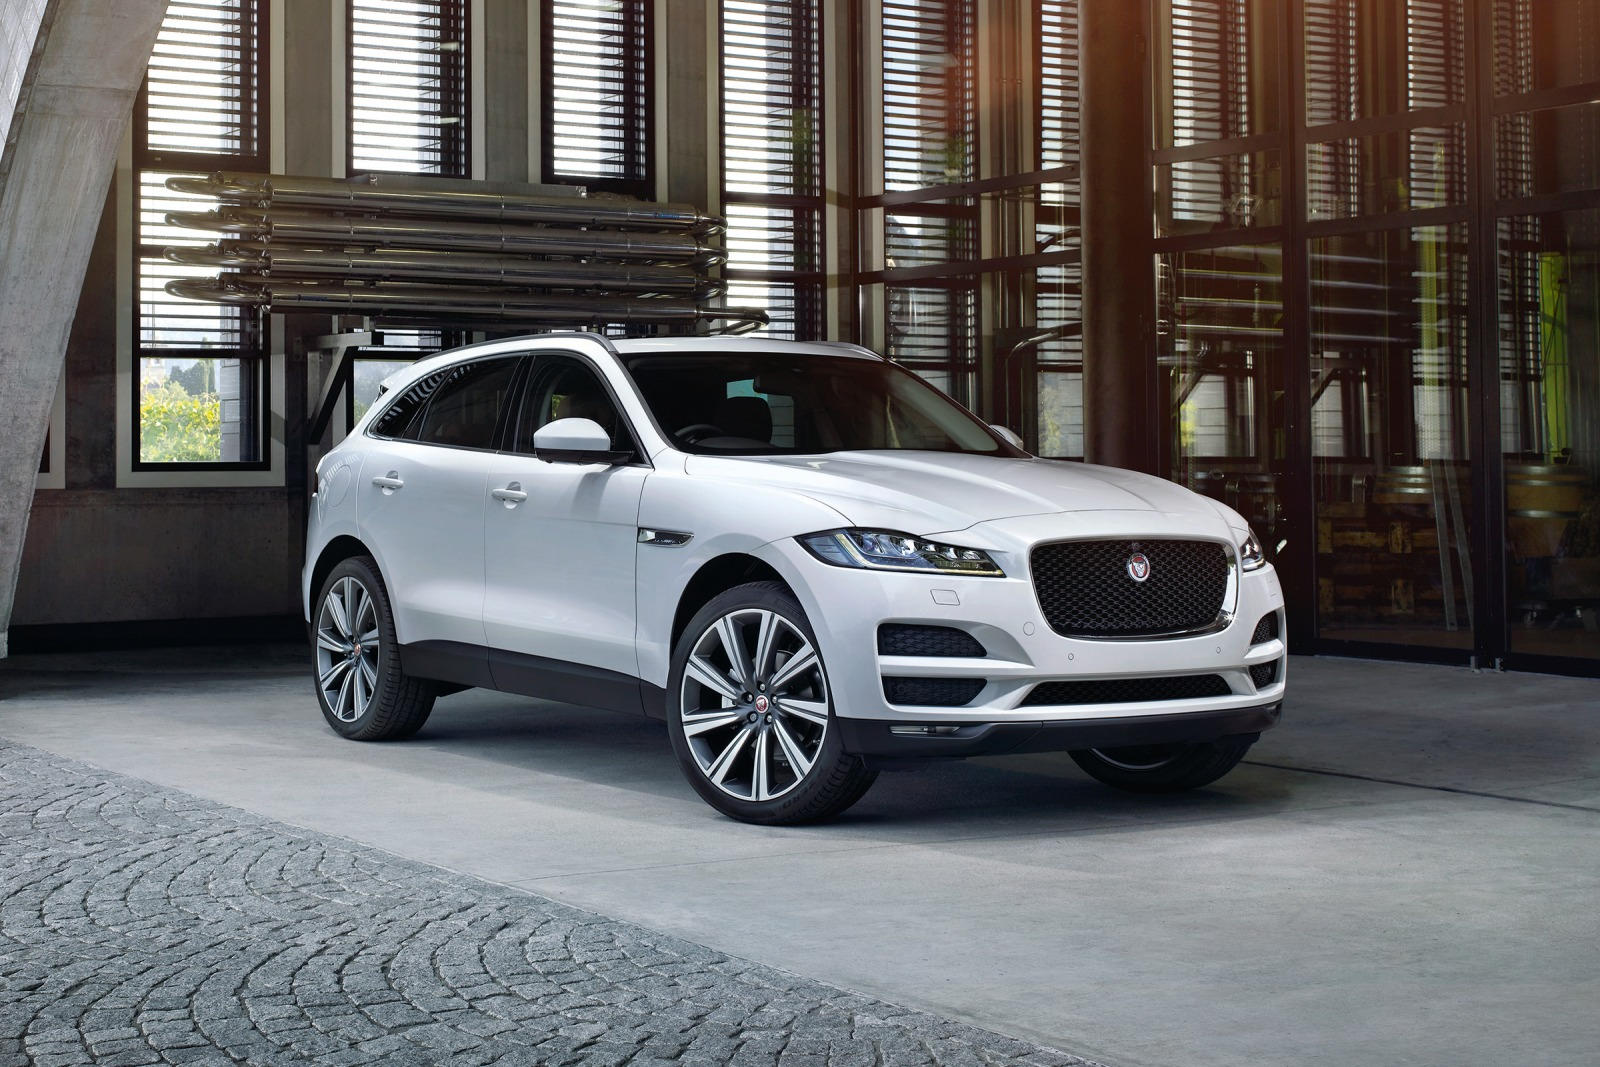 2018 jaguar f pace review trims specs and price carbuzz. Black Bedroom Furniture Sets. Home Design Ideas